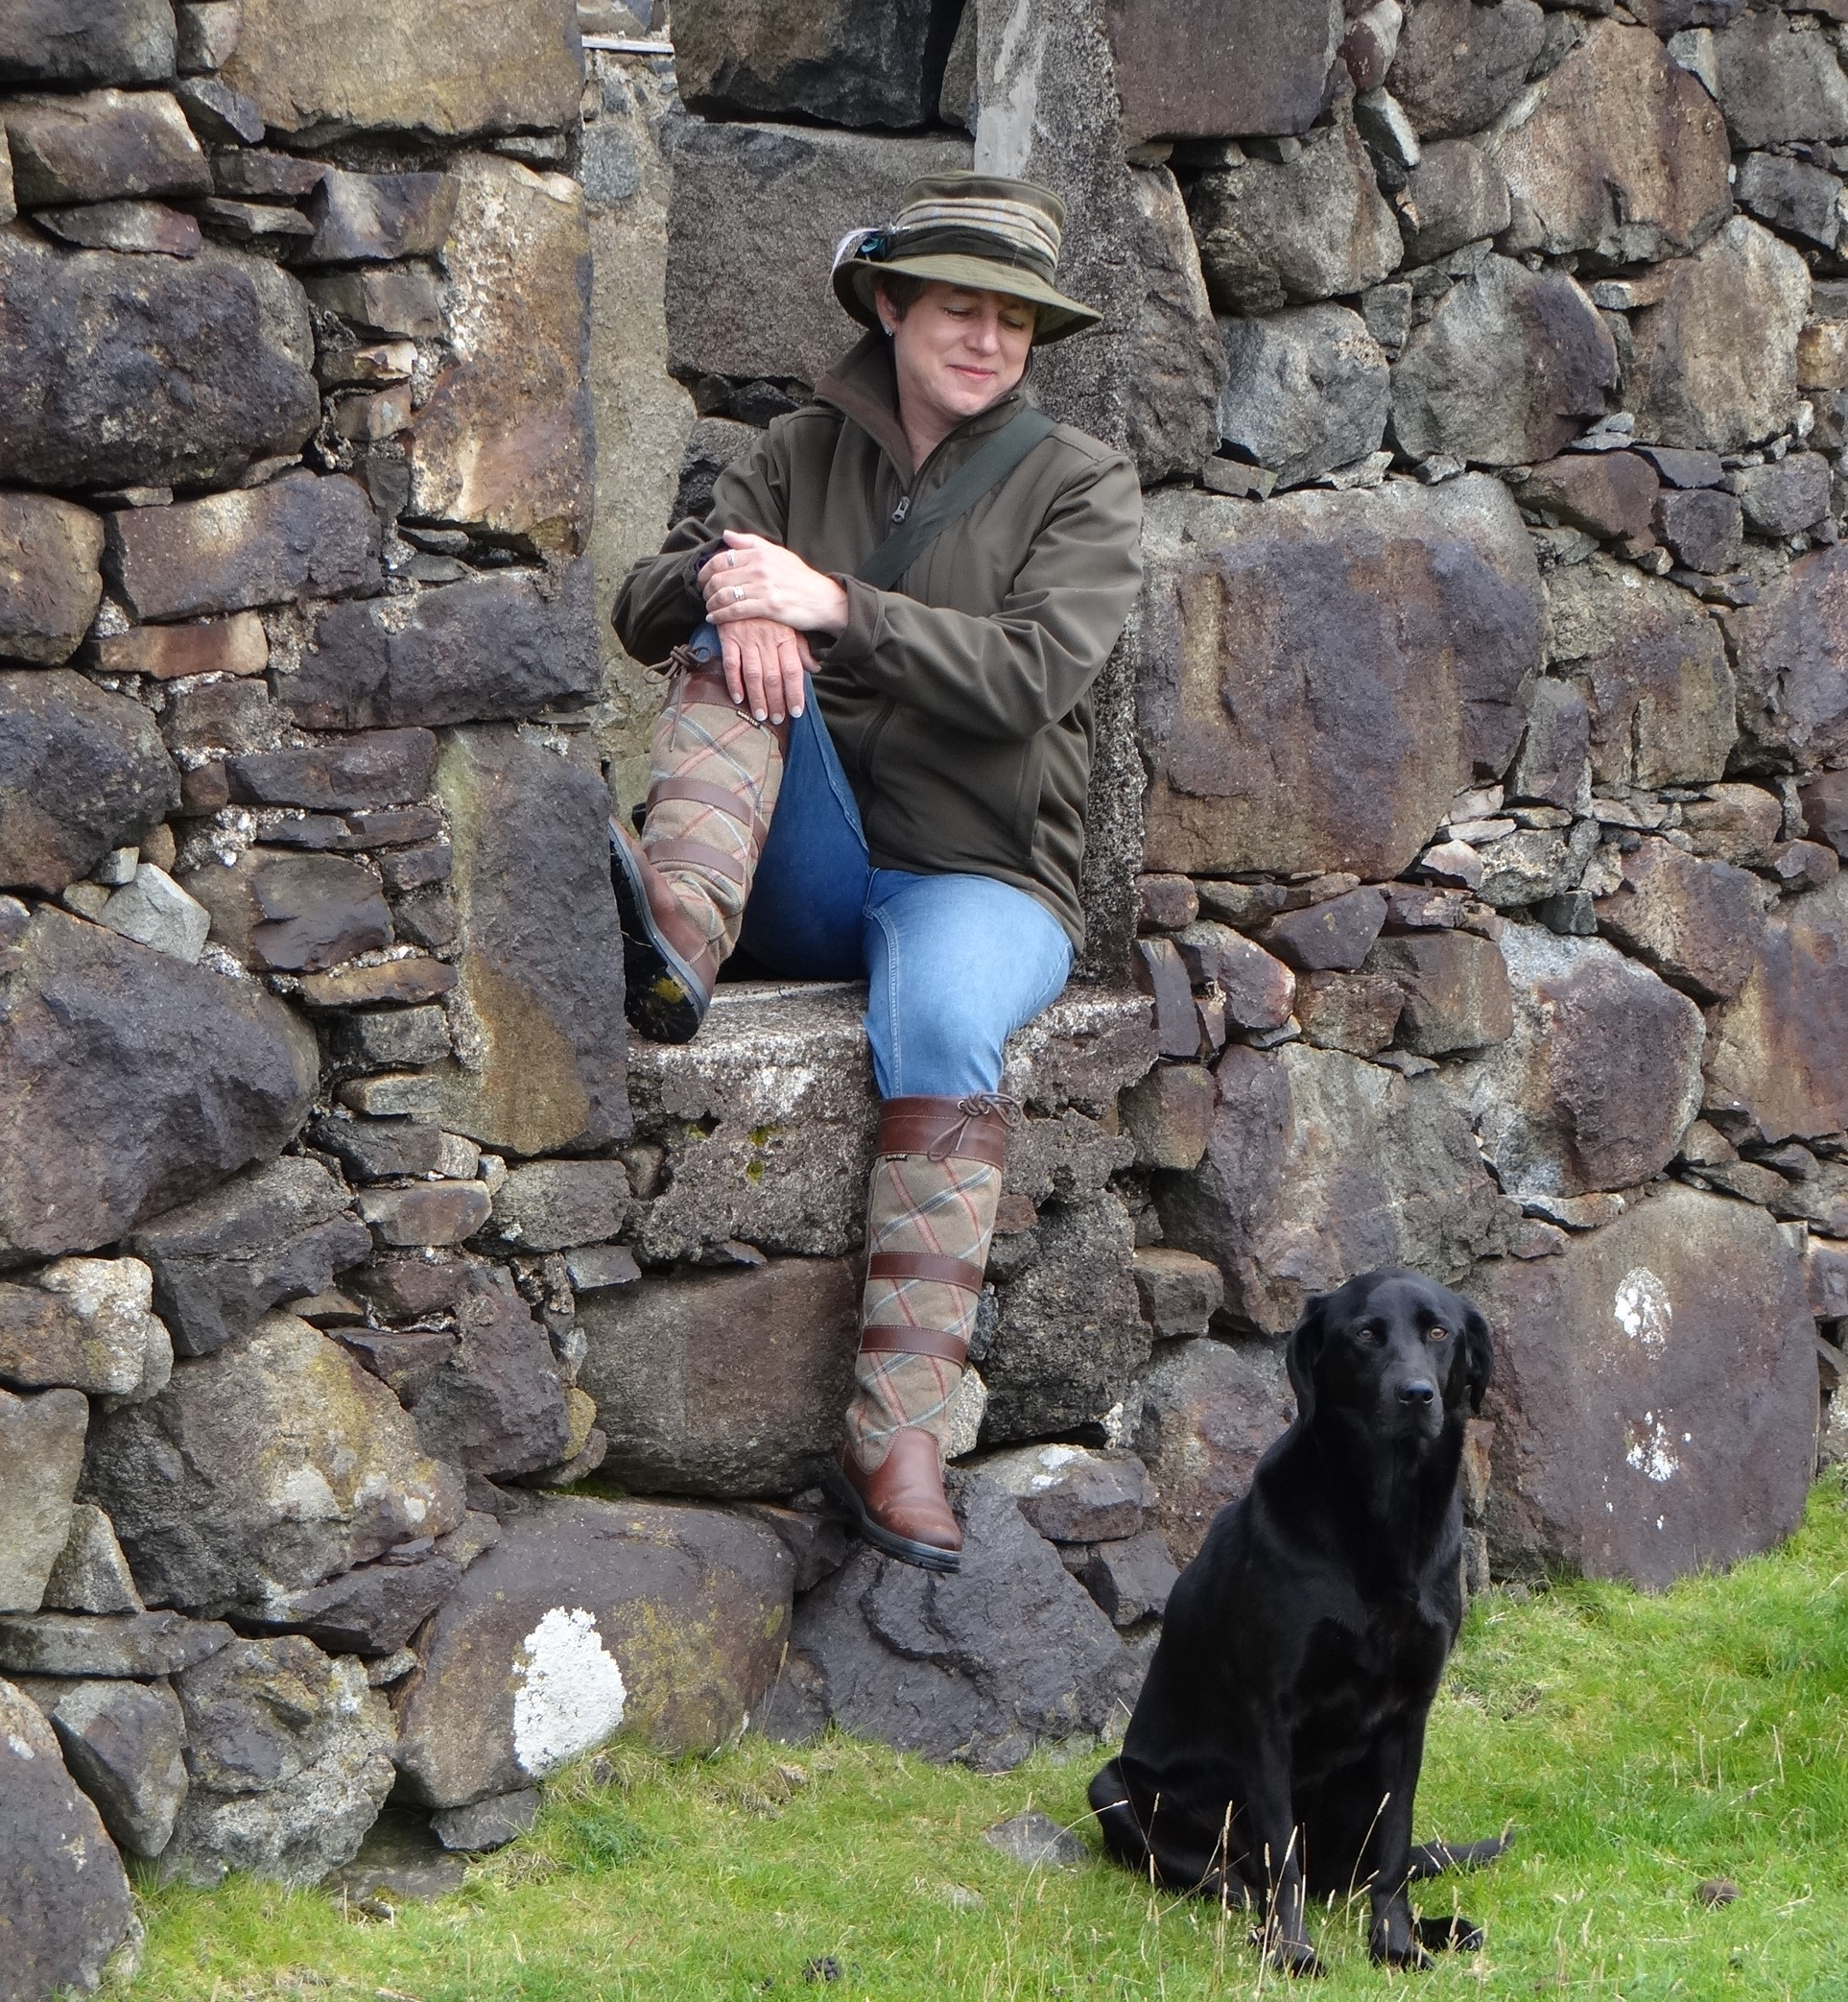 Image of the author a woman in country coat and hat sat in window opening of a ruined building. Her black dog sat on ground